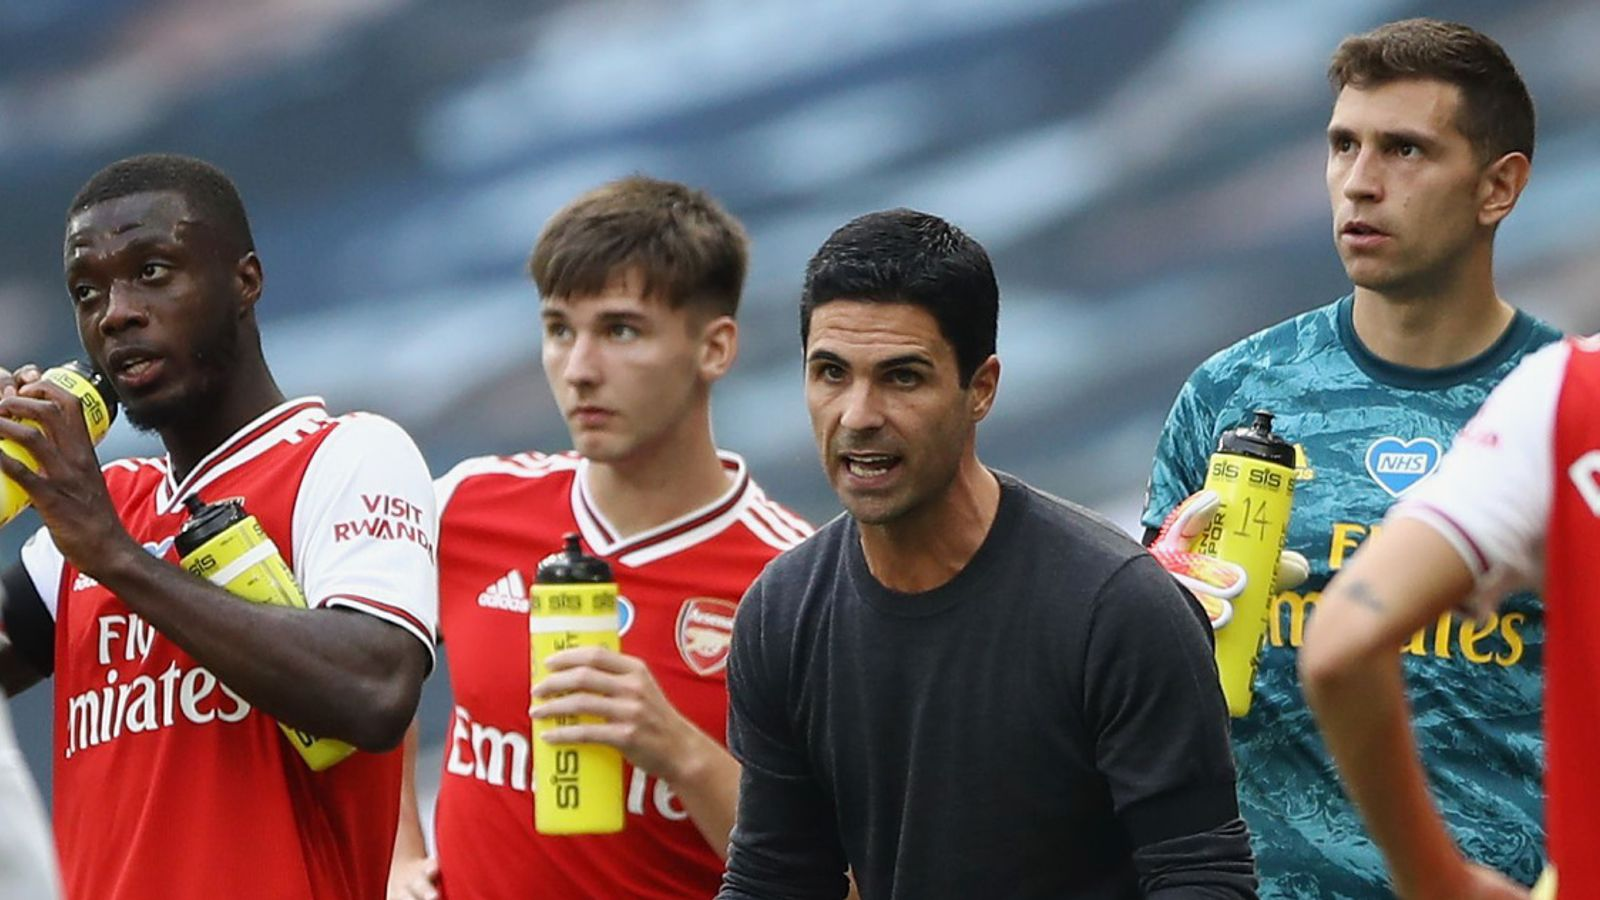 https://celebritycontent.com/2020/07/16/mikel-arteta-arsenal-head-coach-says-missing-european-football-would-be-a-massive-blow-football-news-sky-sports/